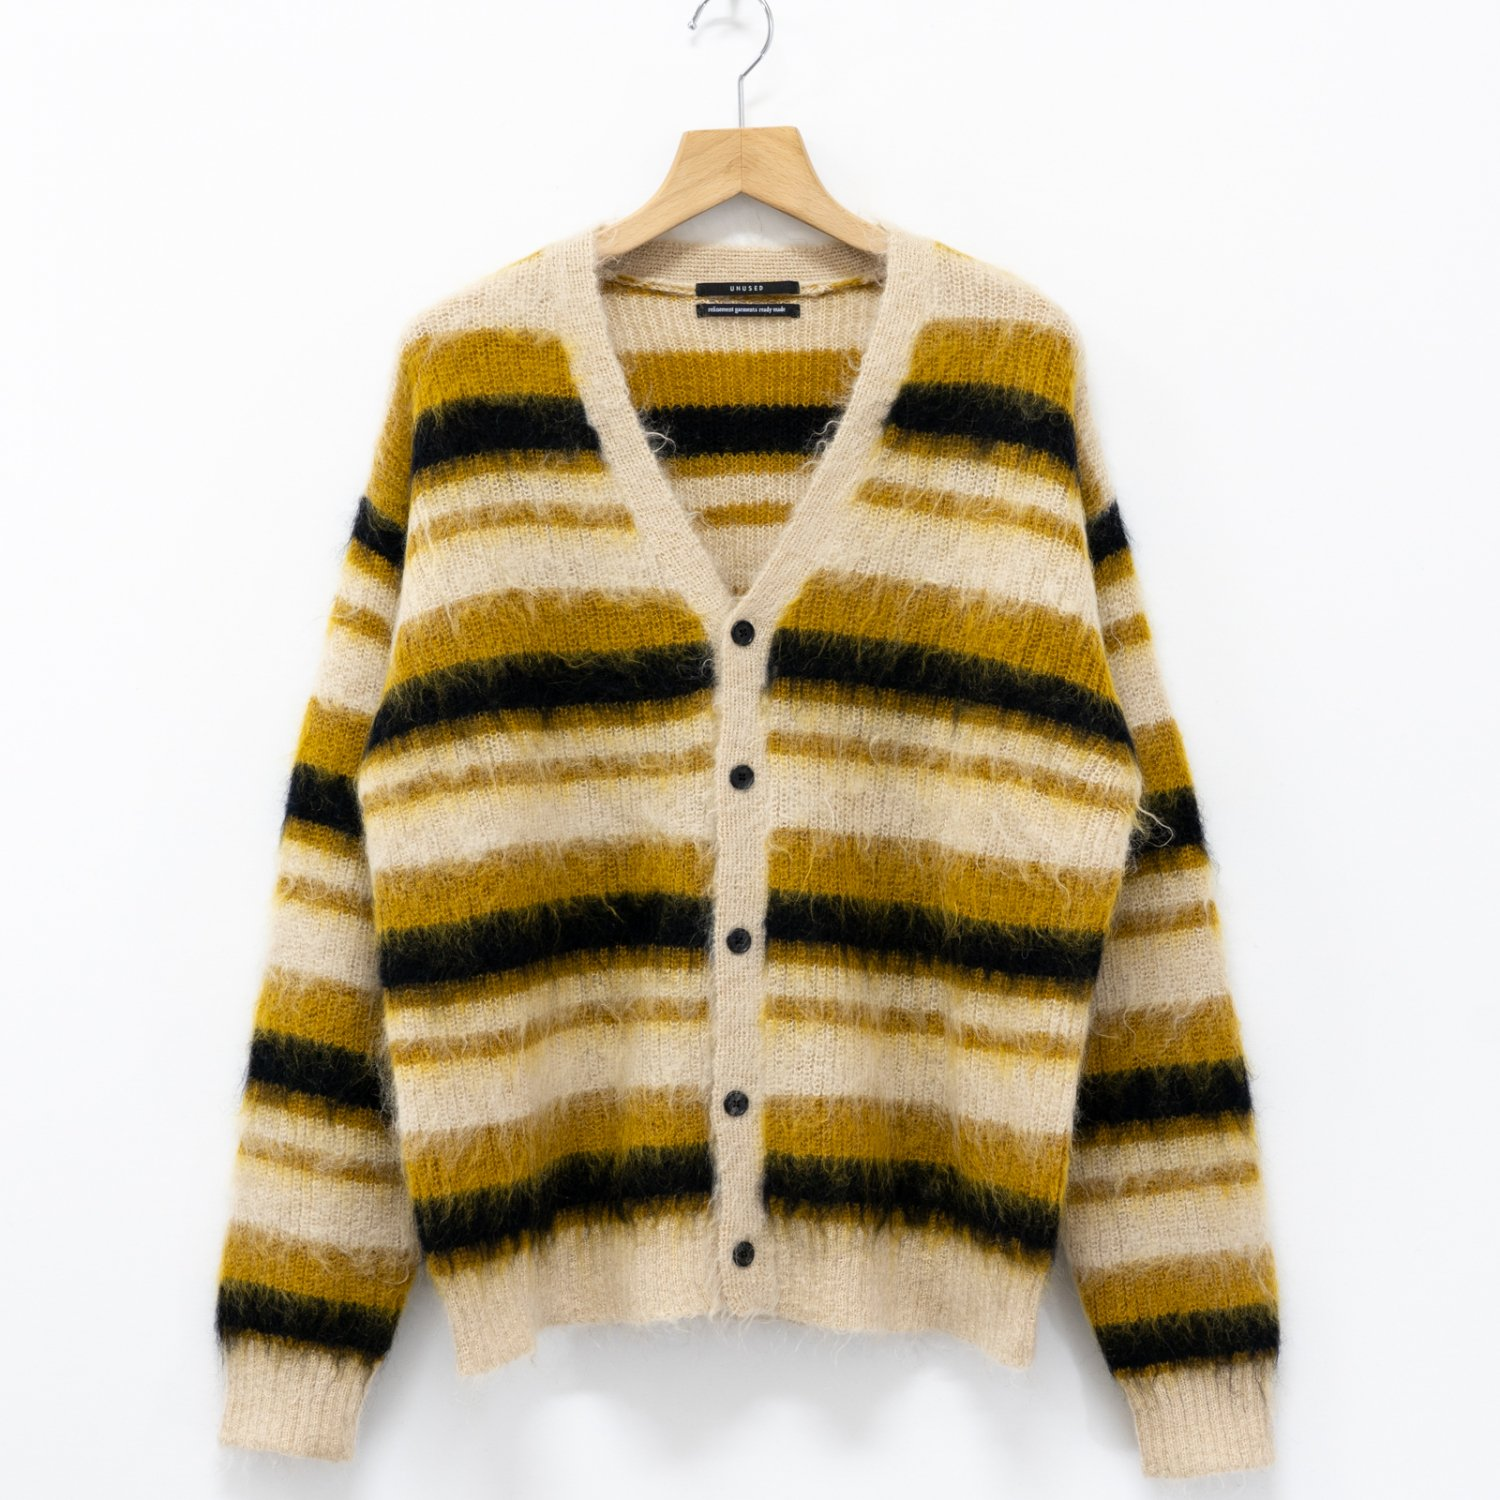 UNUSED * US1650 5G Border Knit Cardigan * Yellow